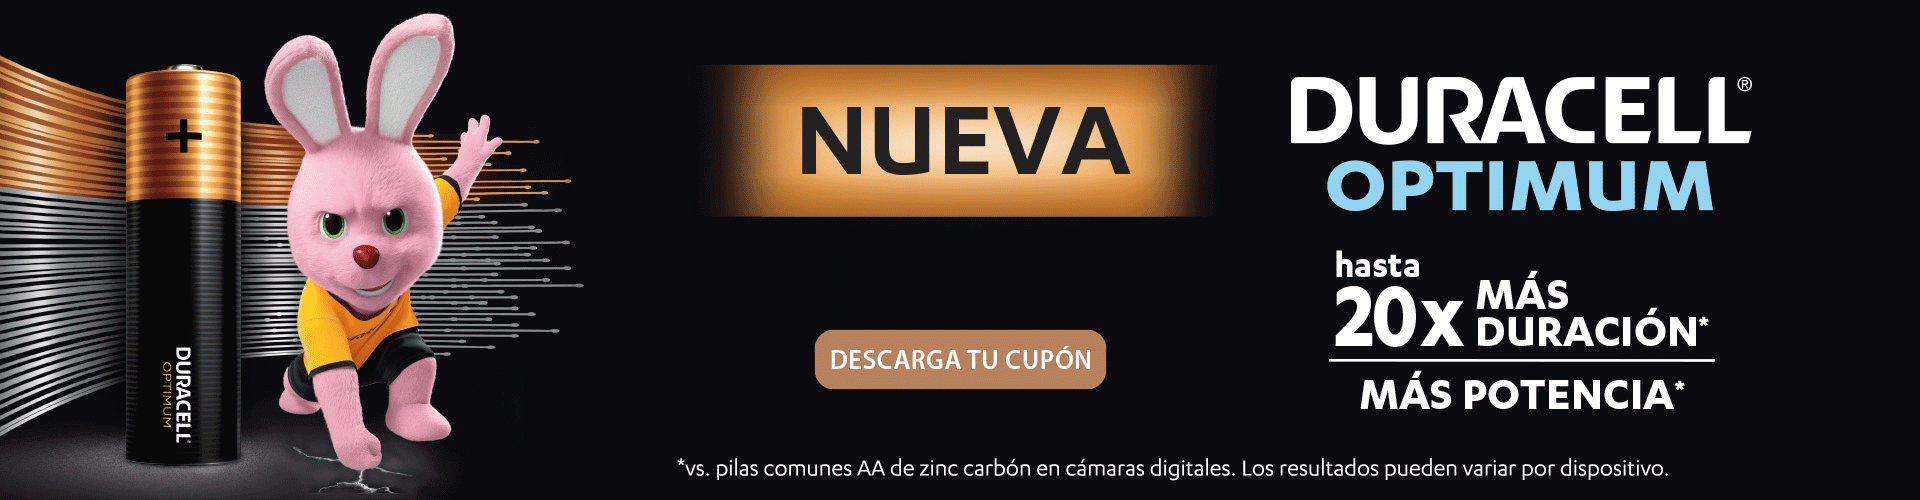 OXXO Cupones Duracell P11 2021